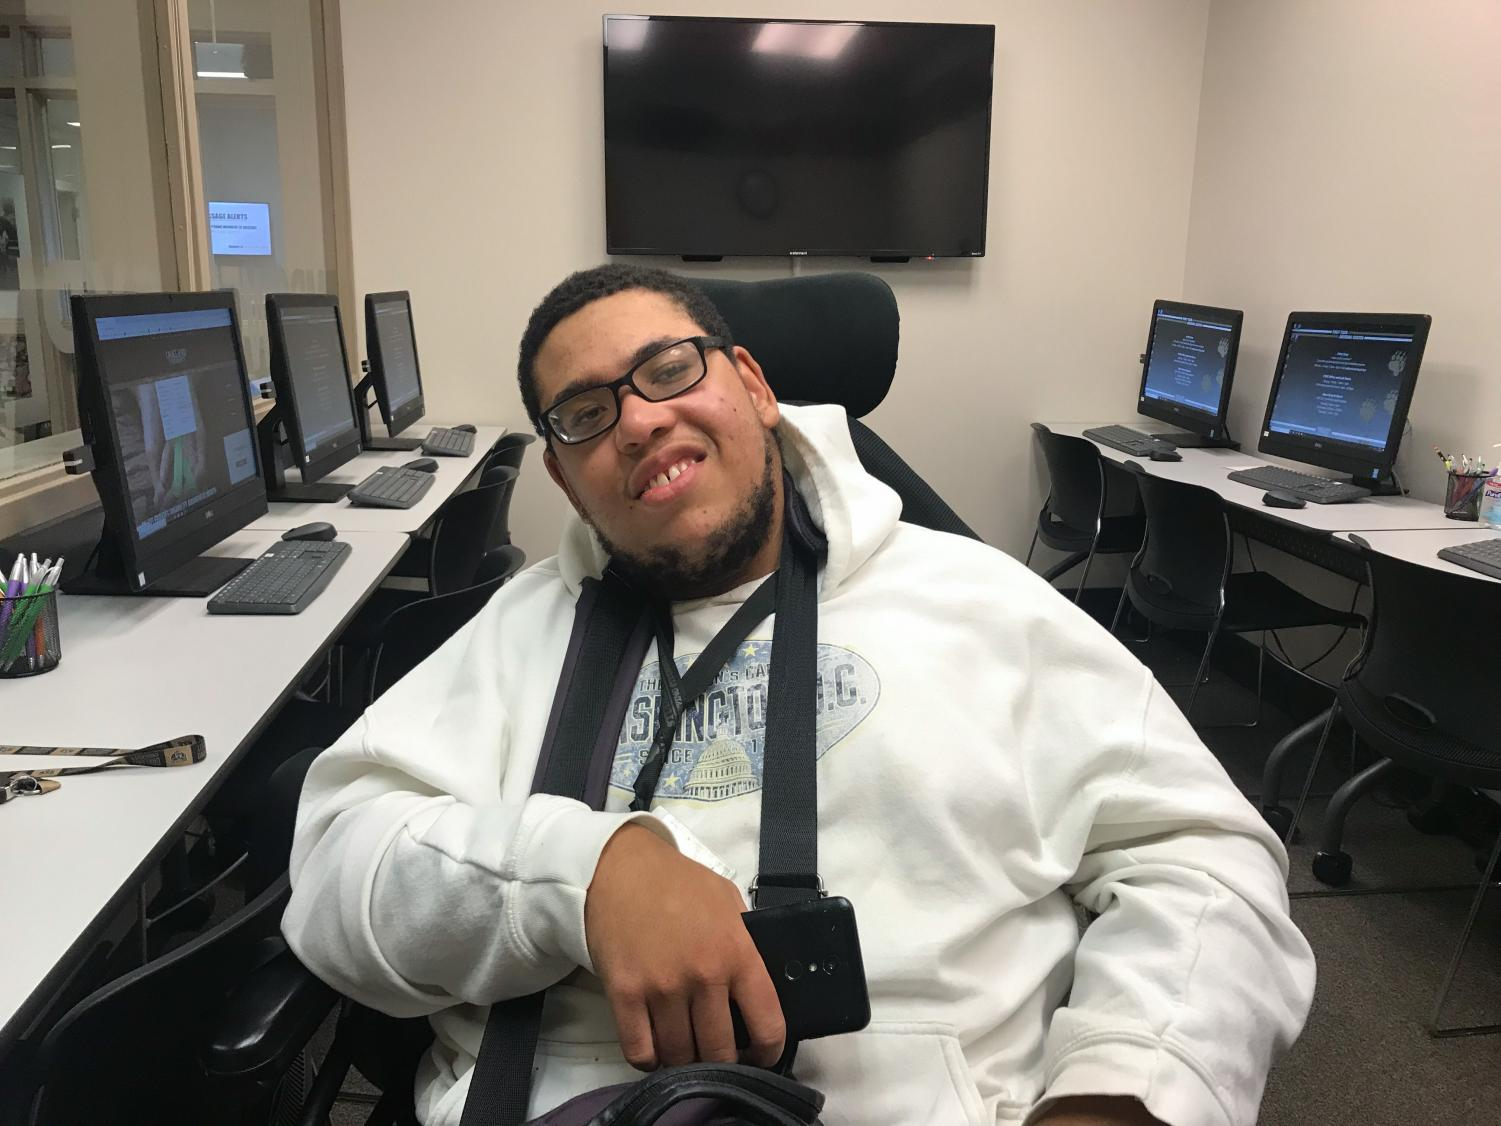 Elijah Sanders, junior, was born with cerebral palsy. He doesn't let that stop him from working toward his dream of getting a law degree.